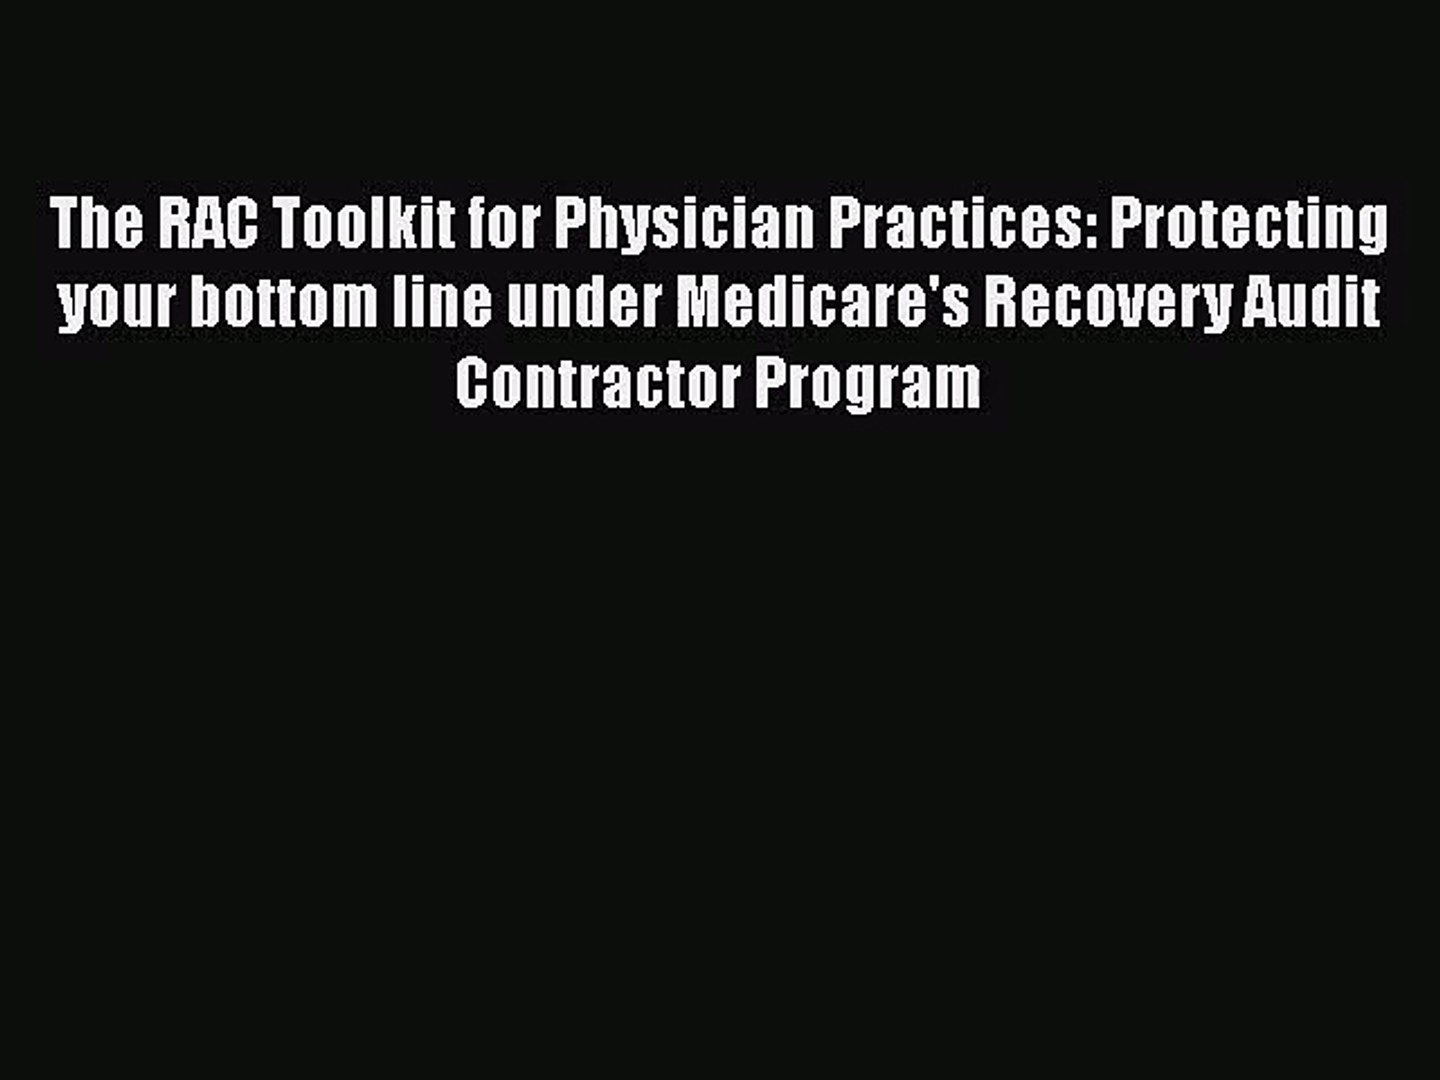 The RAC Toolkit for Physician Practices: Protecting your bottom line under Medicare's Recovery